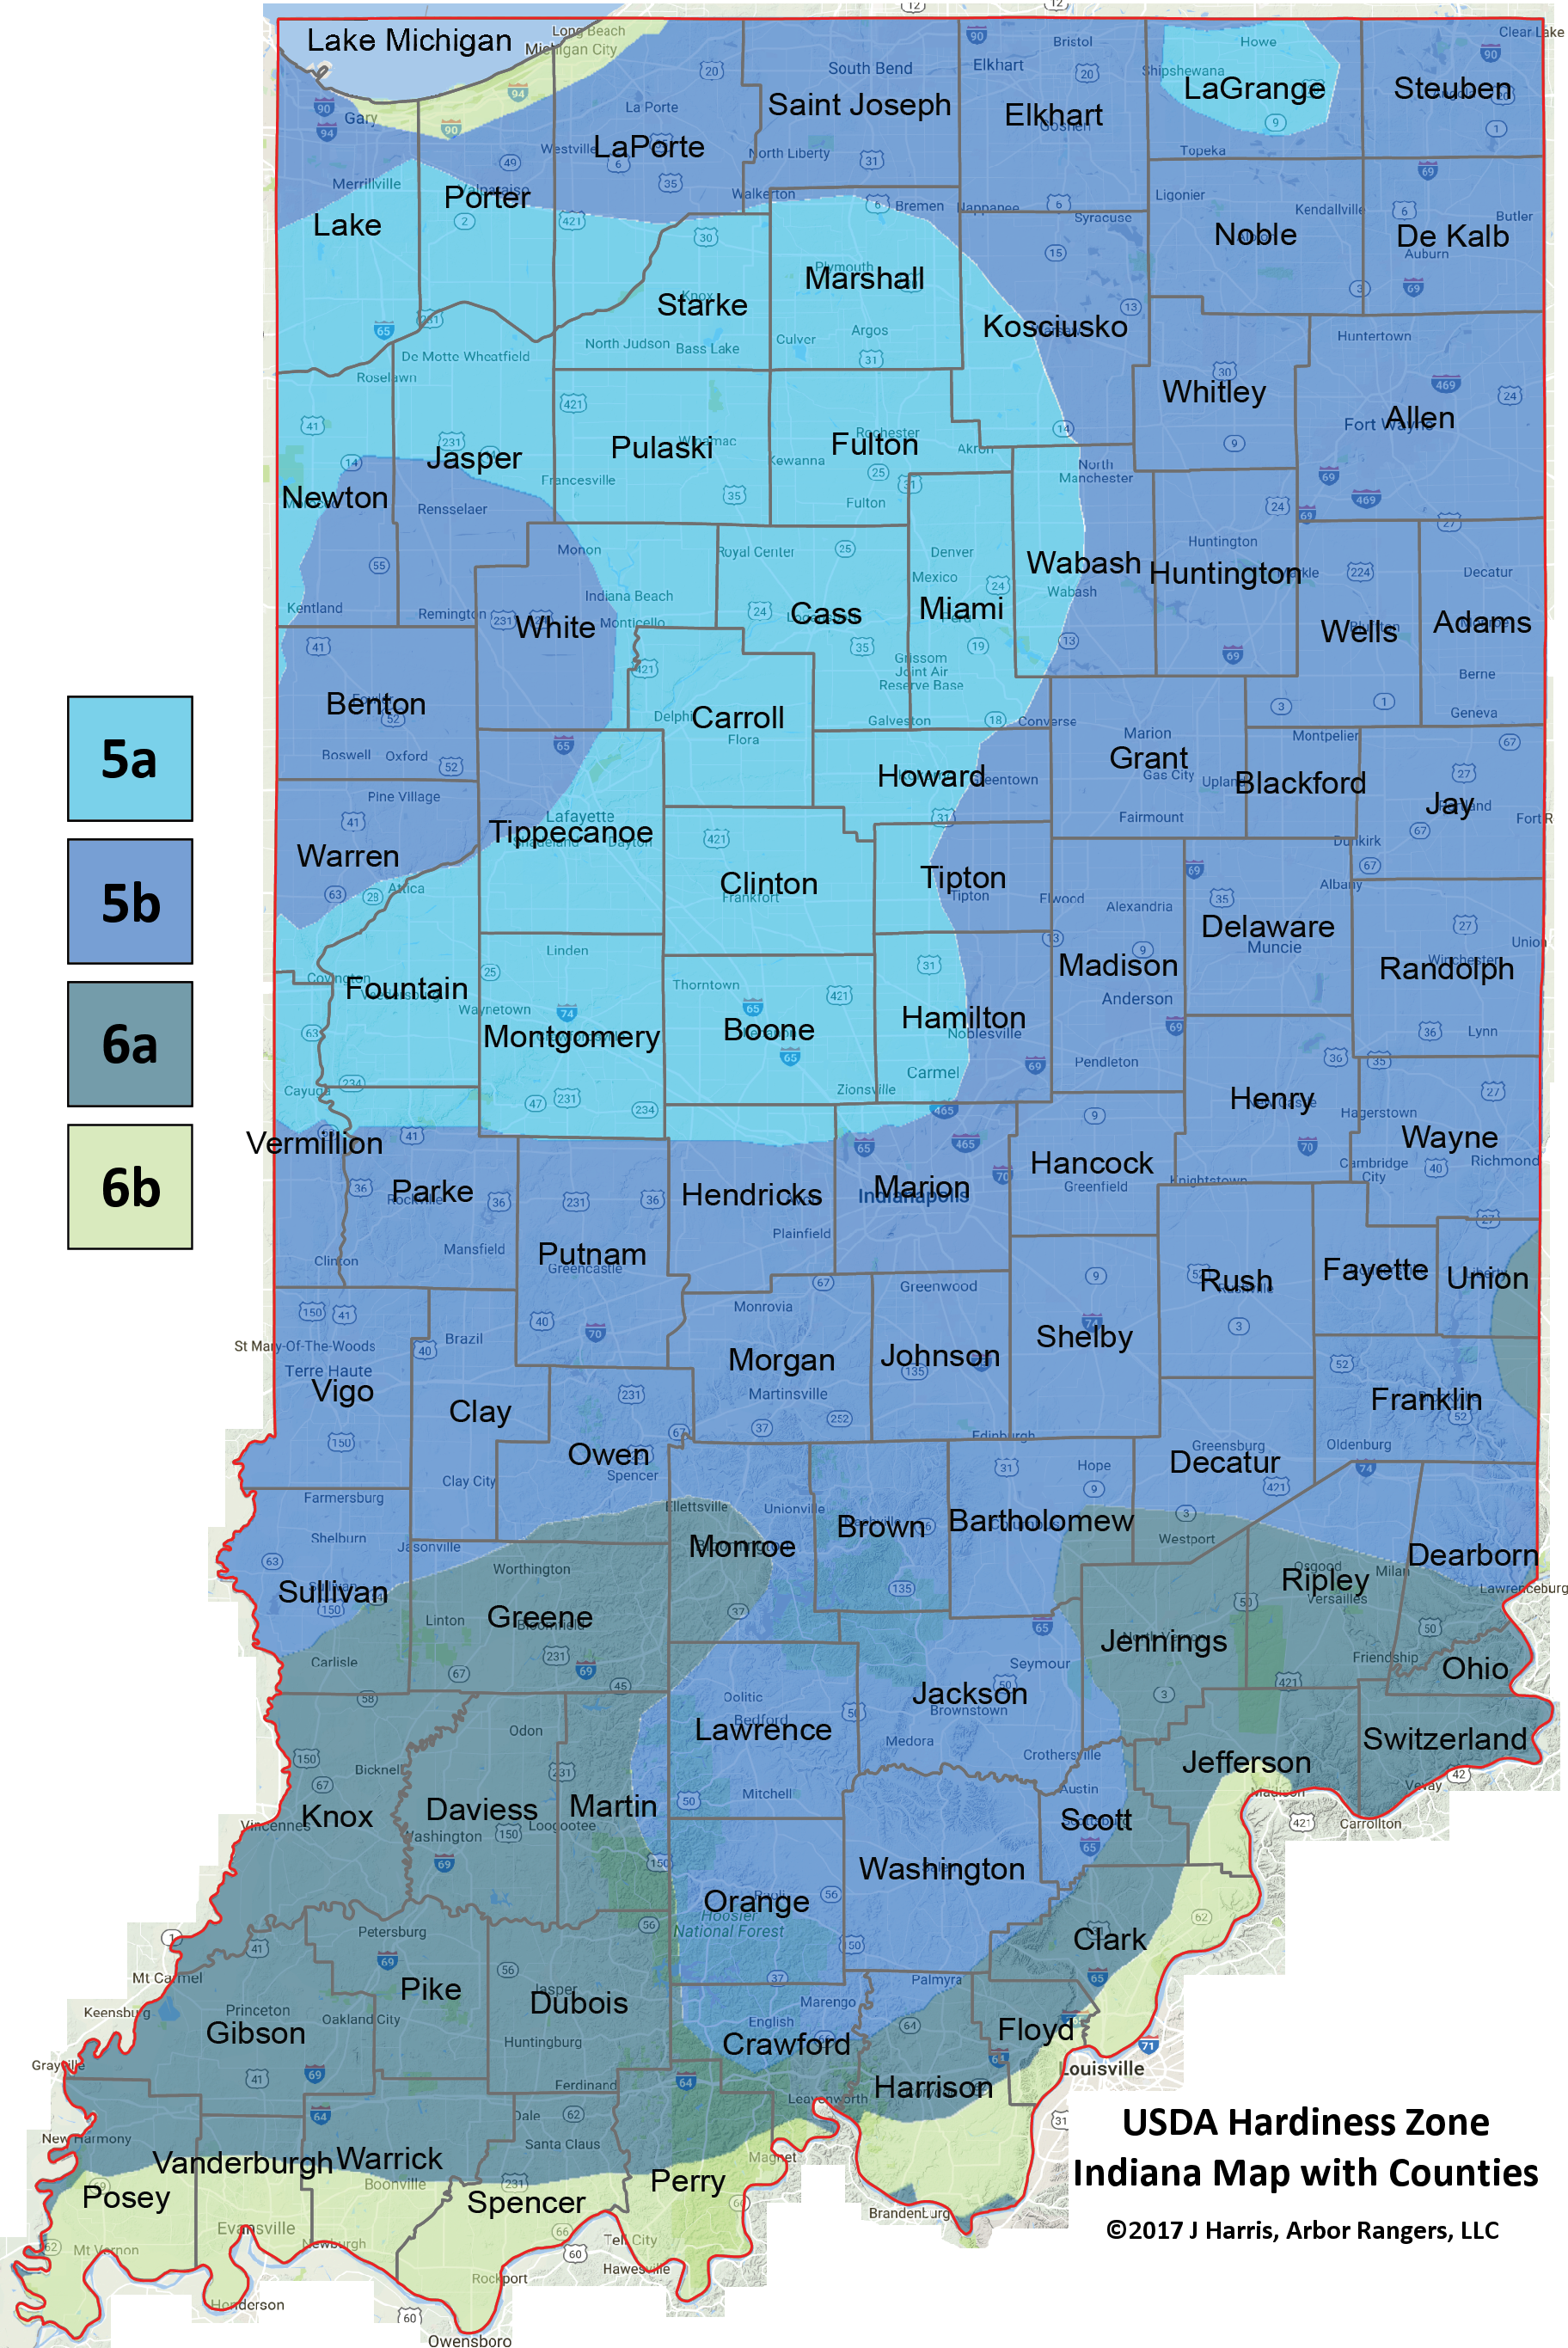 Usda Plant Hardiness Zone Map Indiana Arbor Rangers - Planting-zone-map-of-us